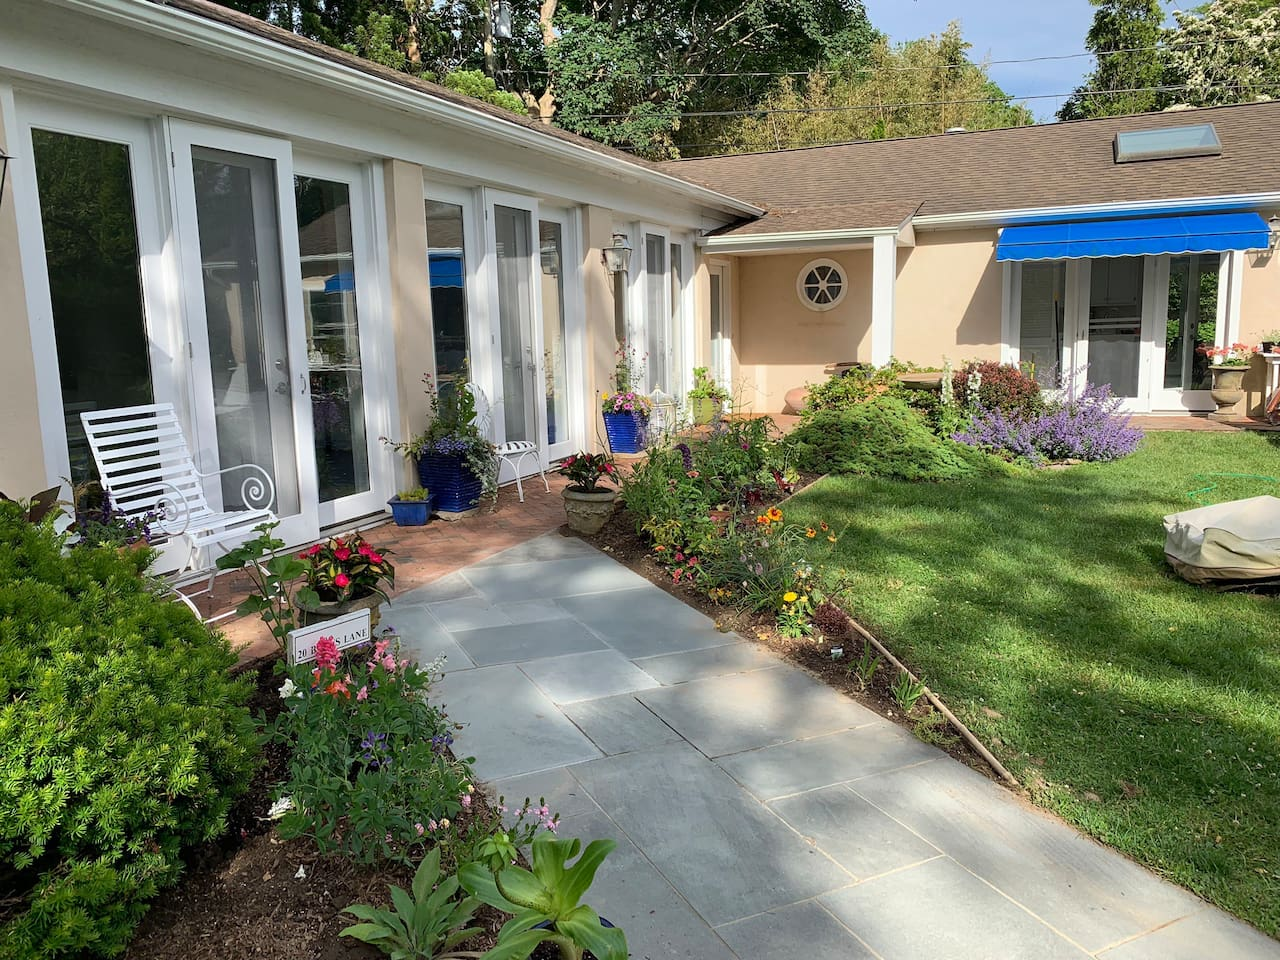 Walkway and door with screens that offer fresh air and great breeze all summer long. The garden is very new, still planting.